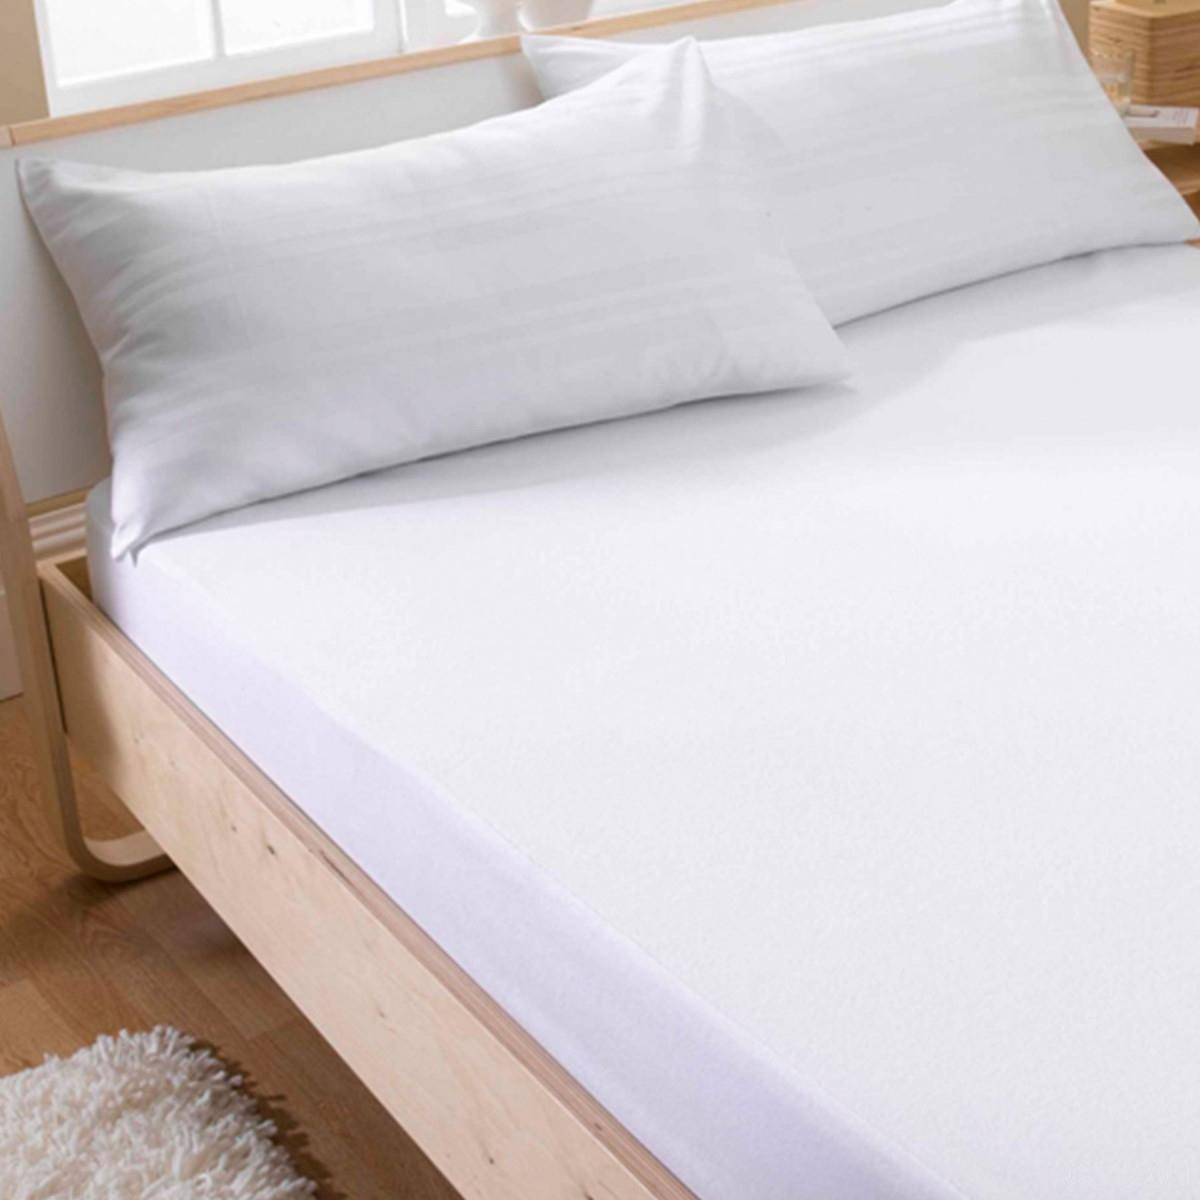 View Flame Retardant Mattress Protectors Collection Details